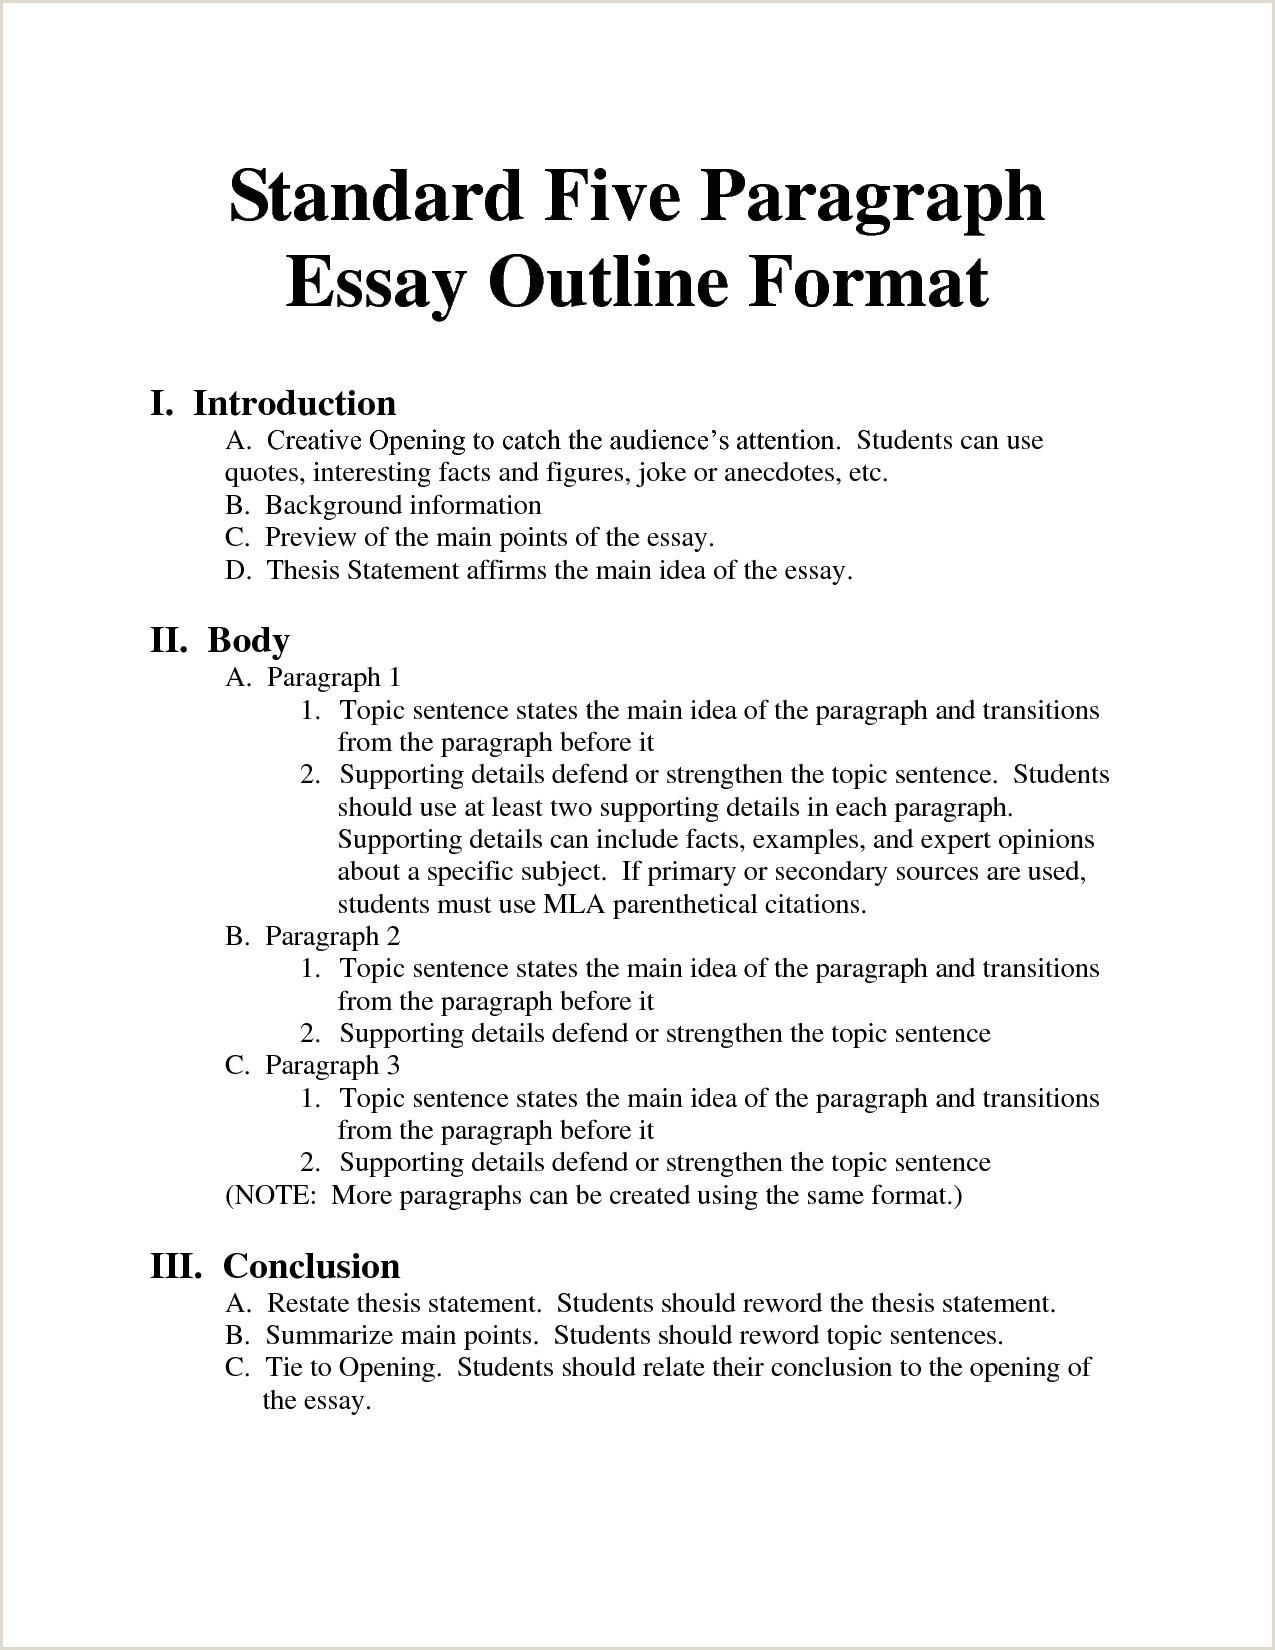 standard format for essay Sadafrpentersdaughter